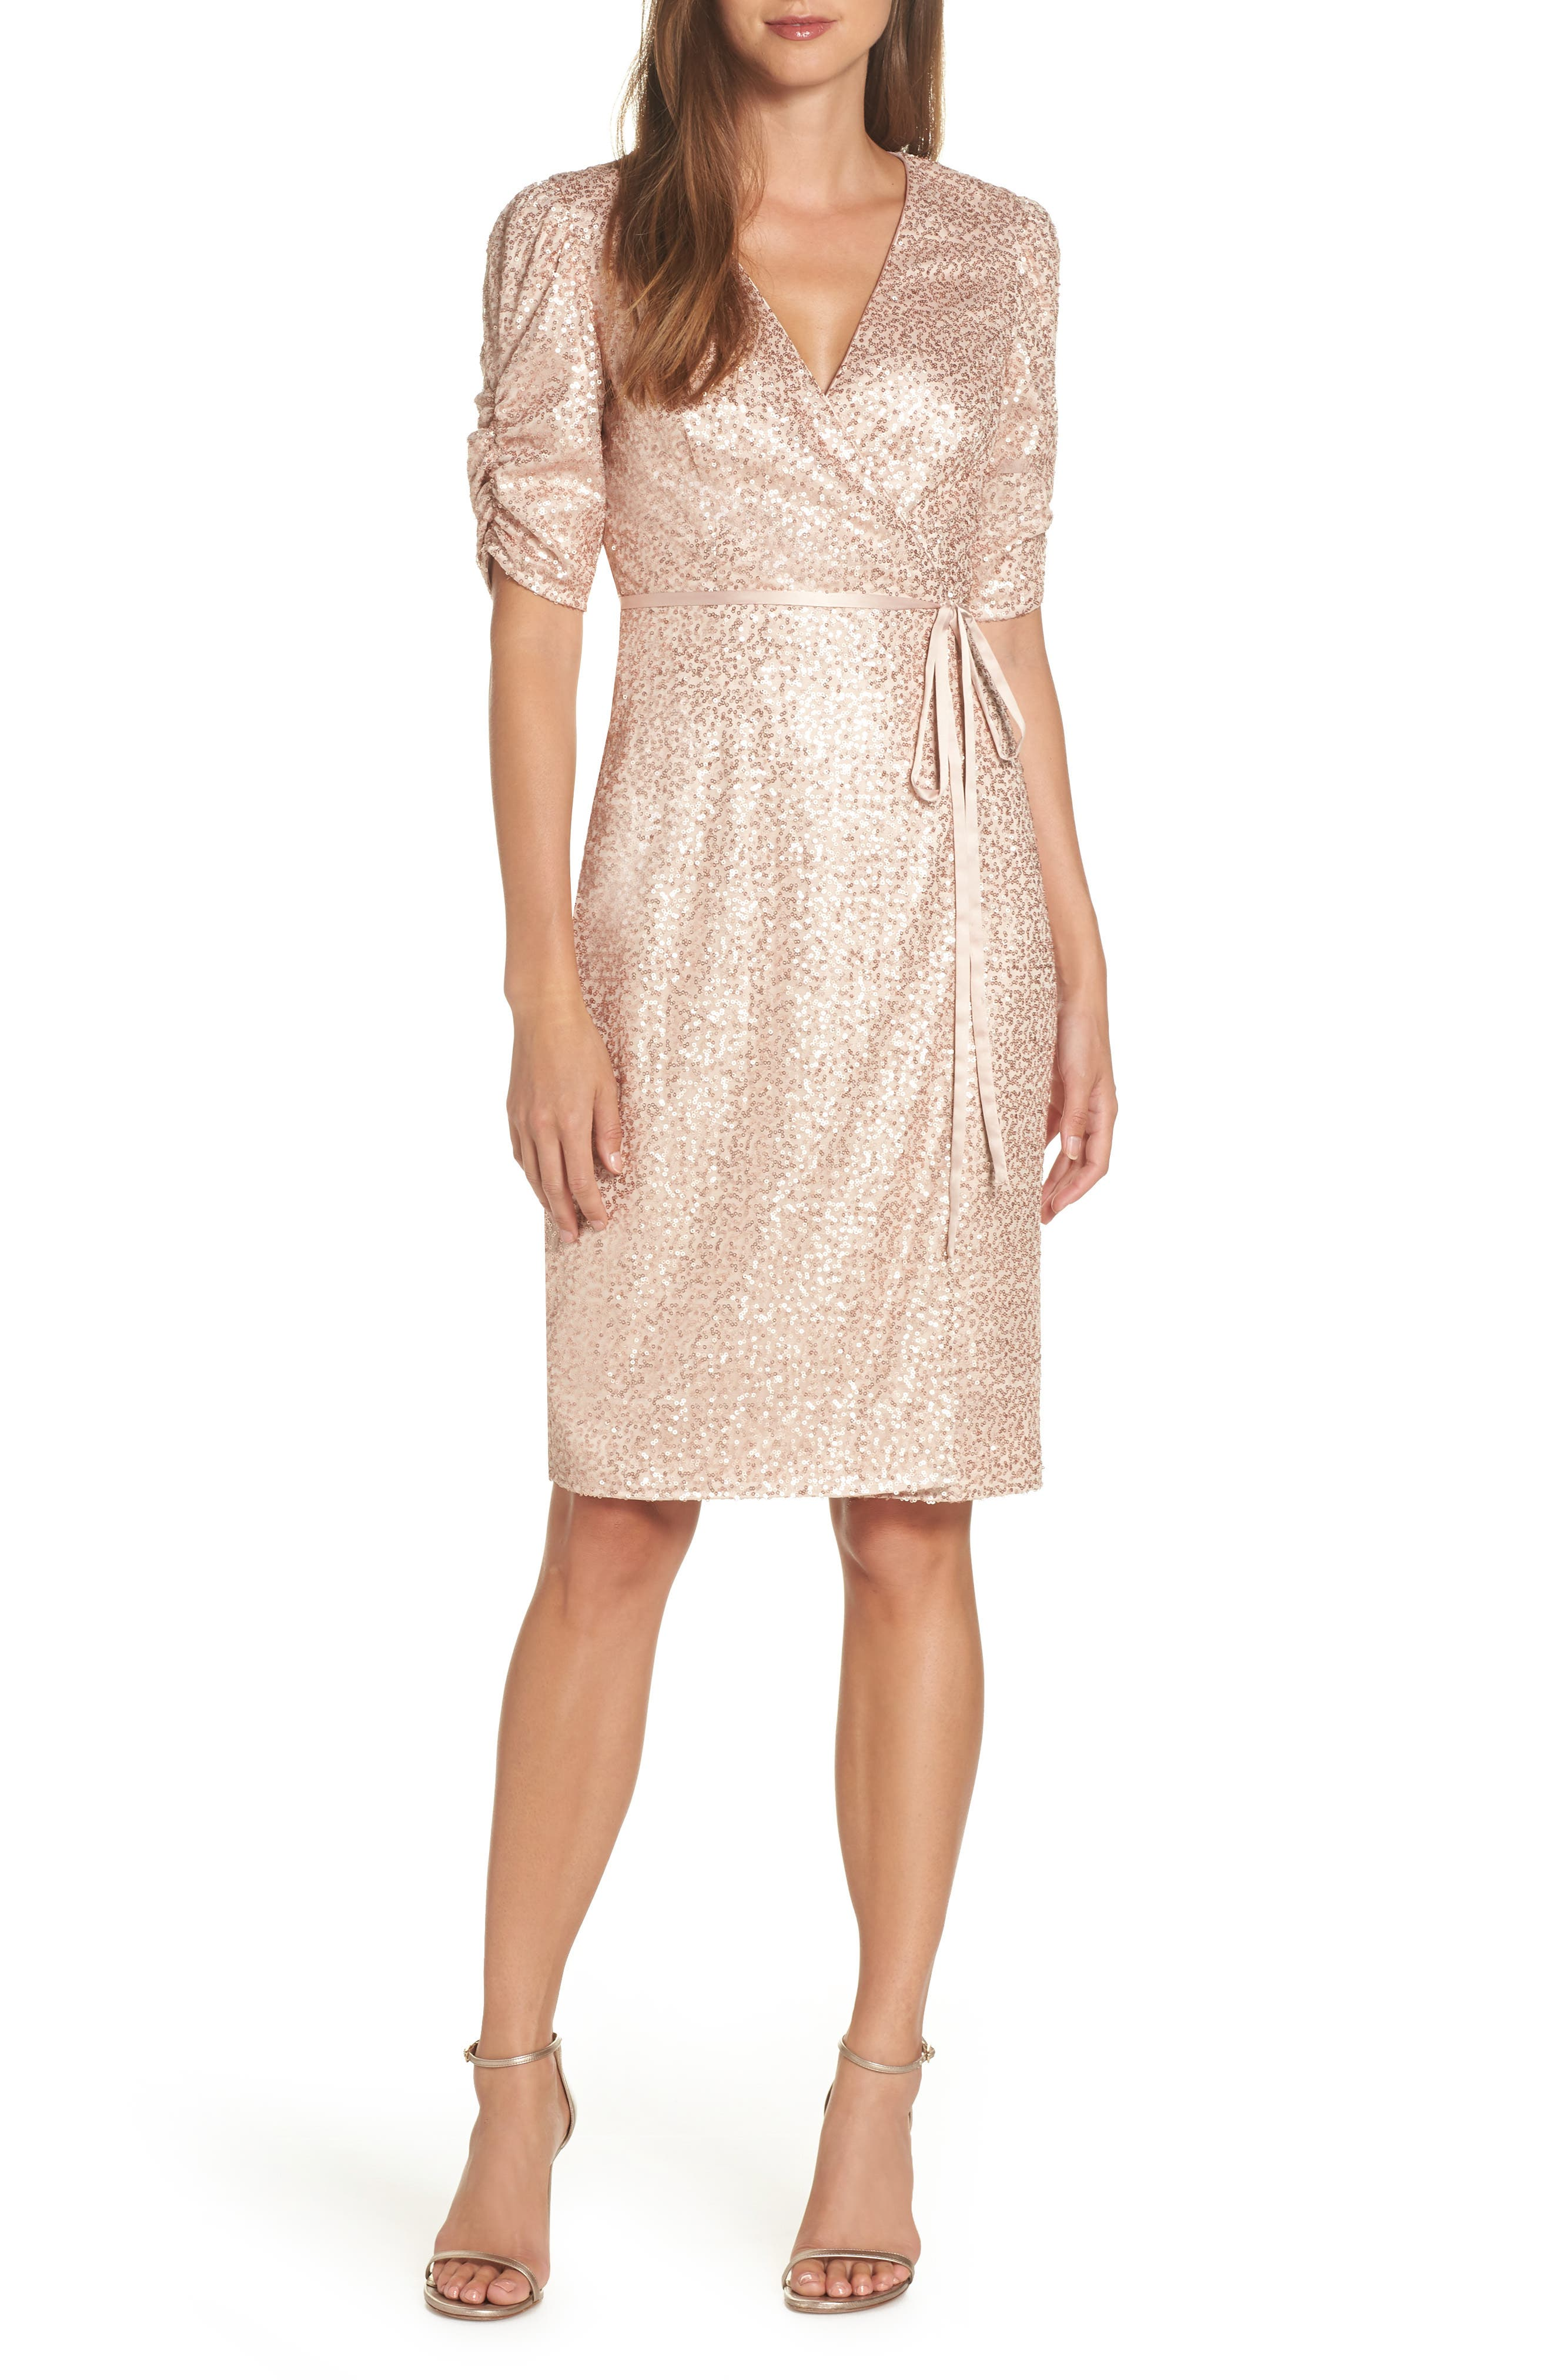 70s Prom, Formal, Evening, Party Dresses Womens Eliza J Sequin Faux Wrap Dress $100.80 AT vintagedancer.com